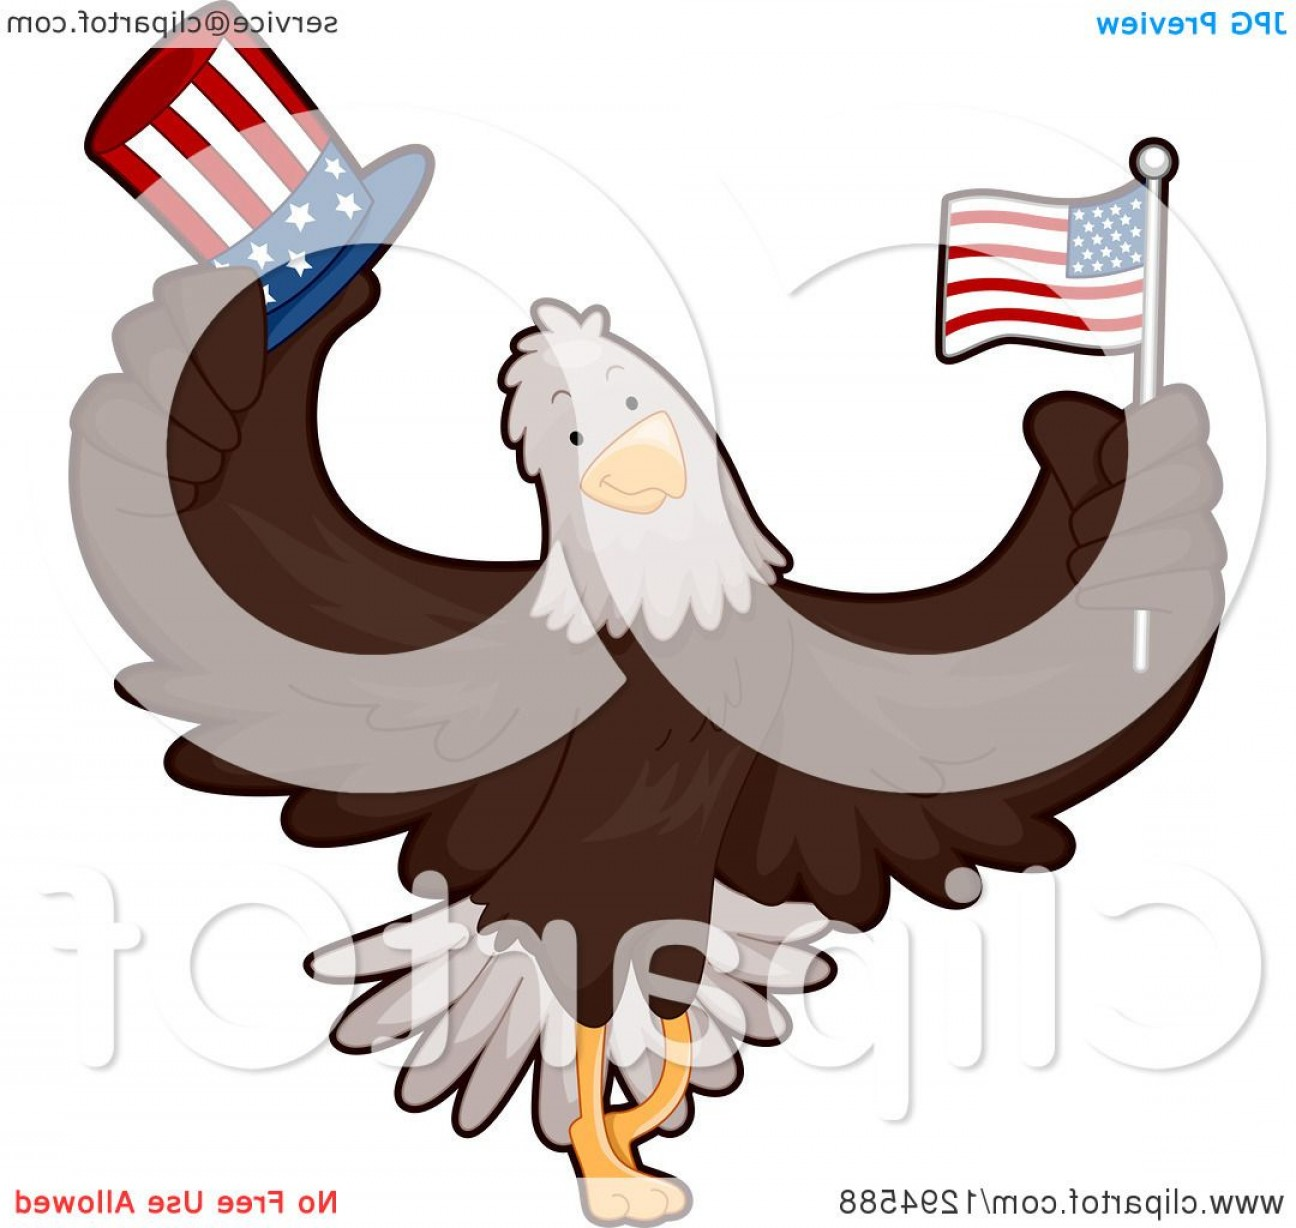 Patriotic Bald Eagle Vector: Cartoon Patriotic Bald Eagle Holding An American Flag And Top Hat